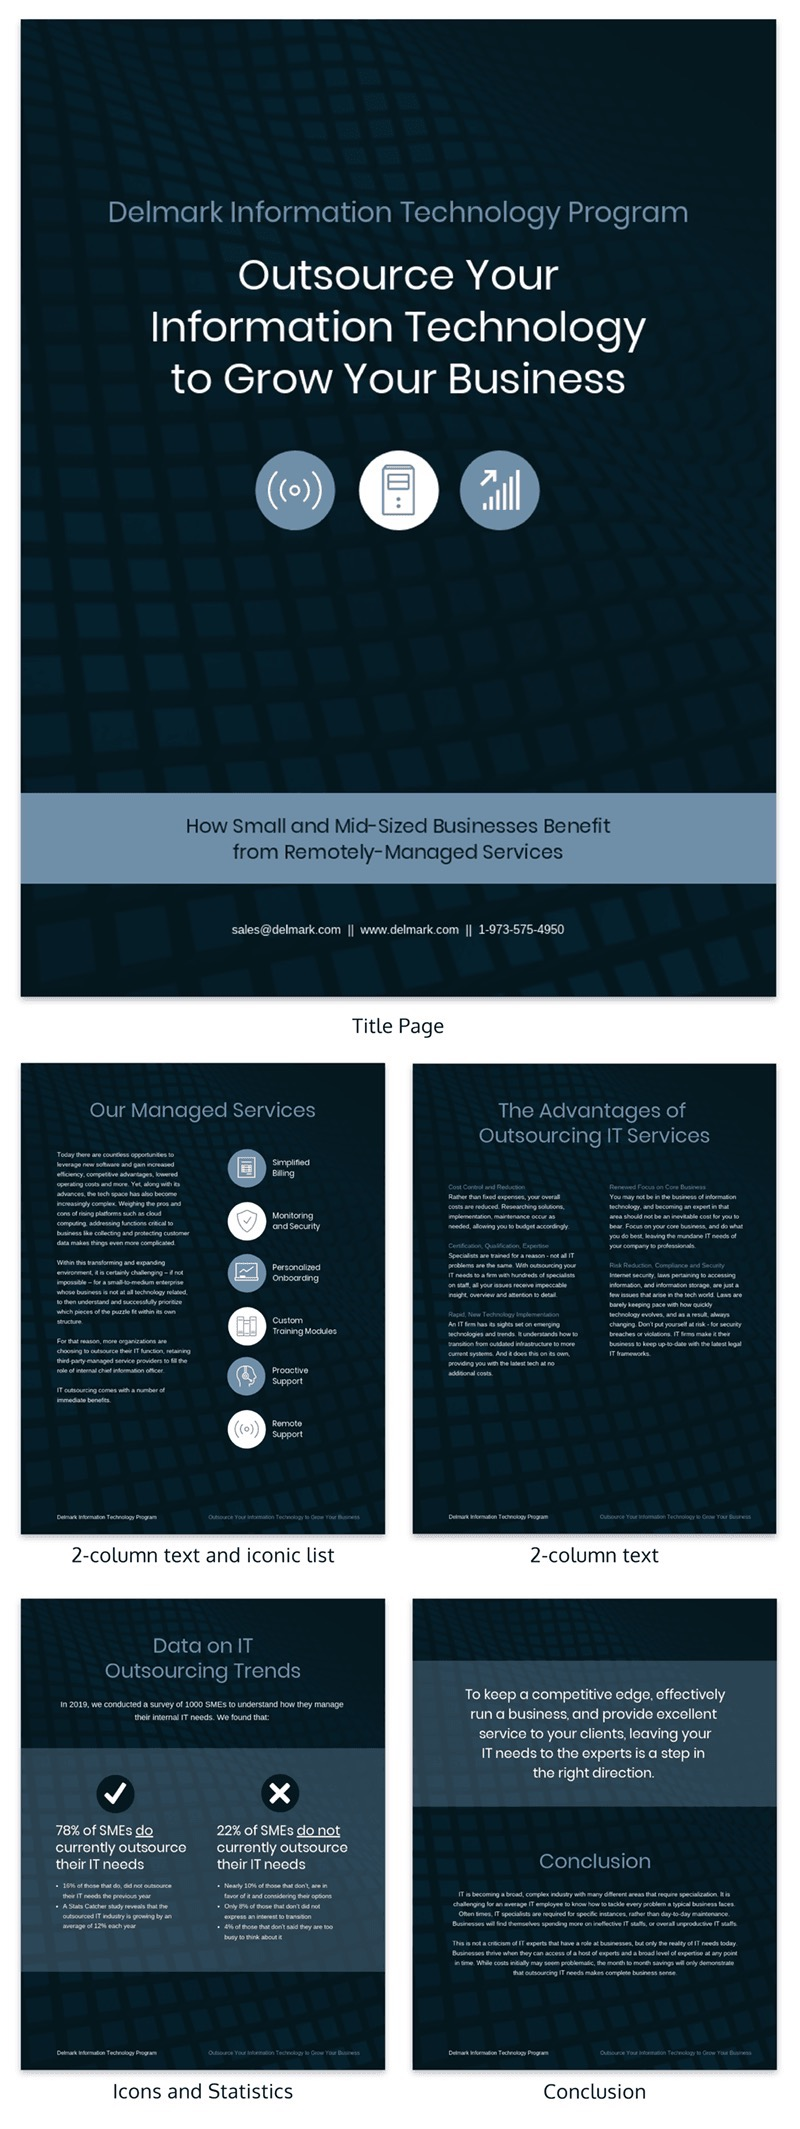 Black Business Technology White Paper Examples